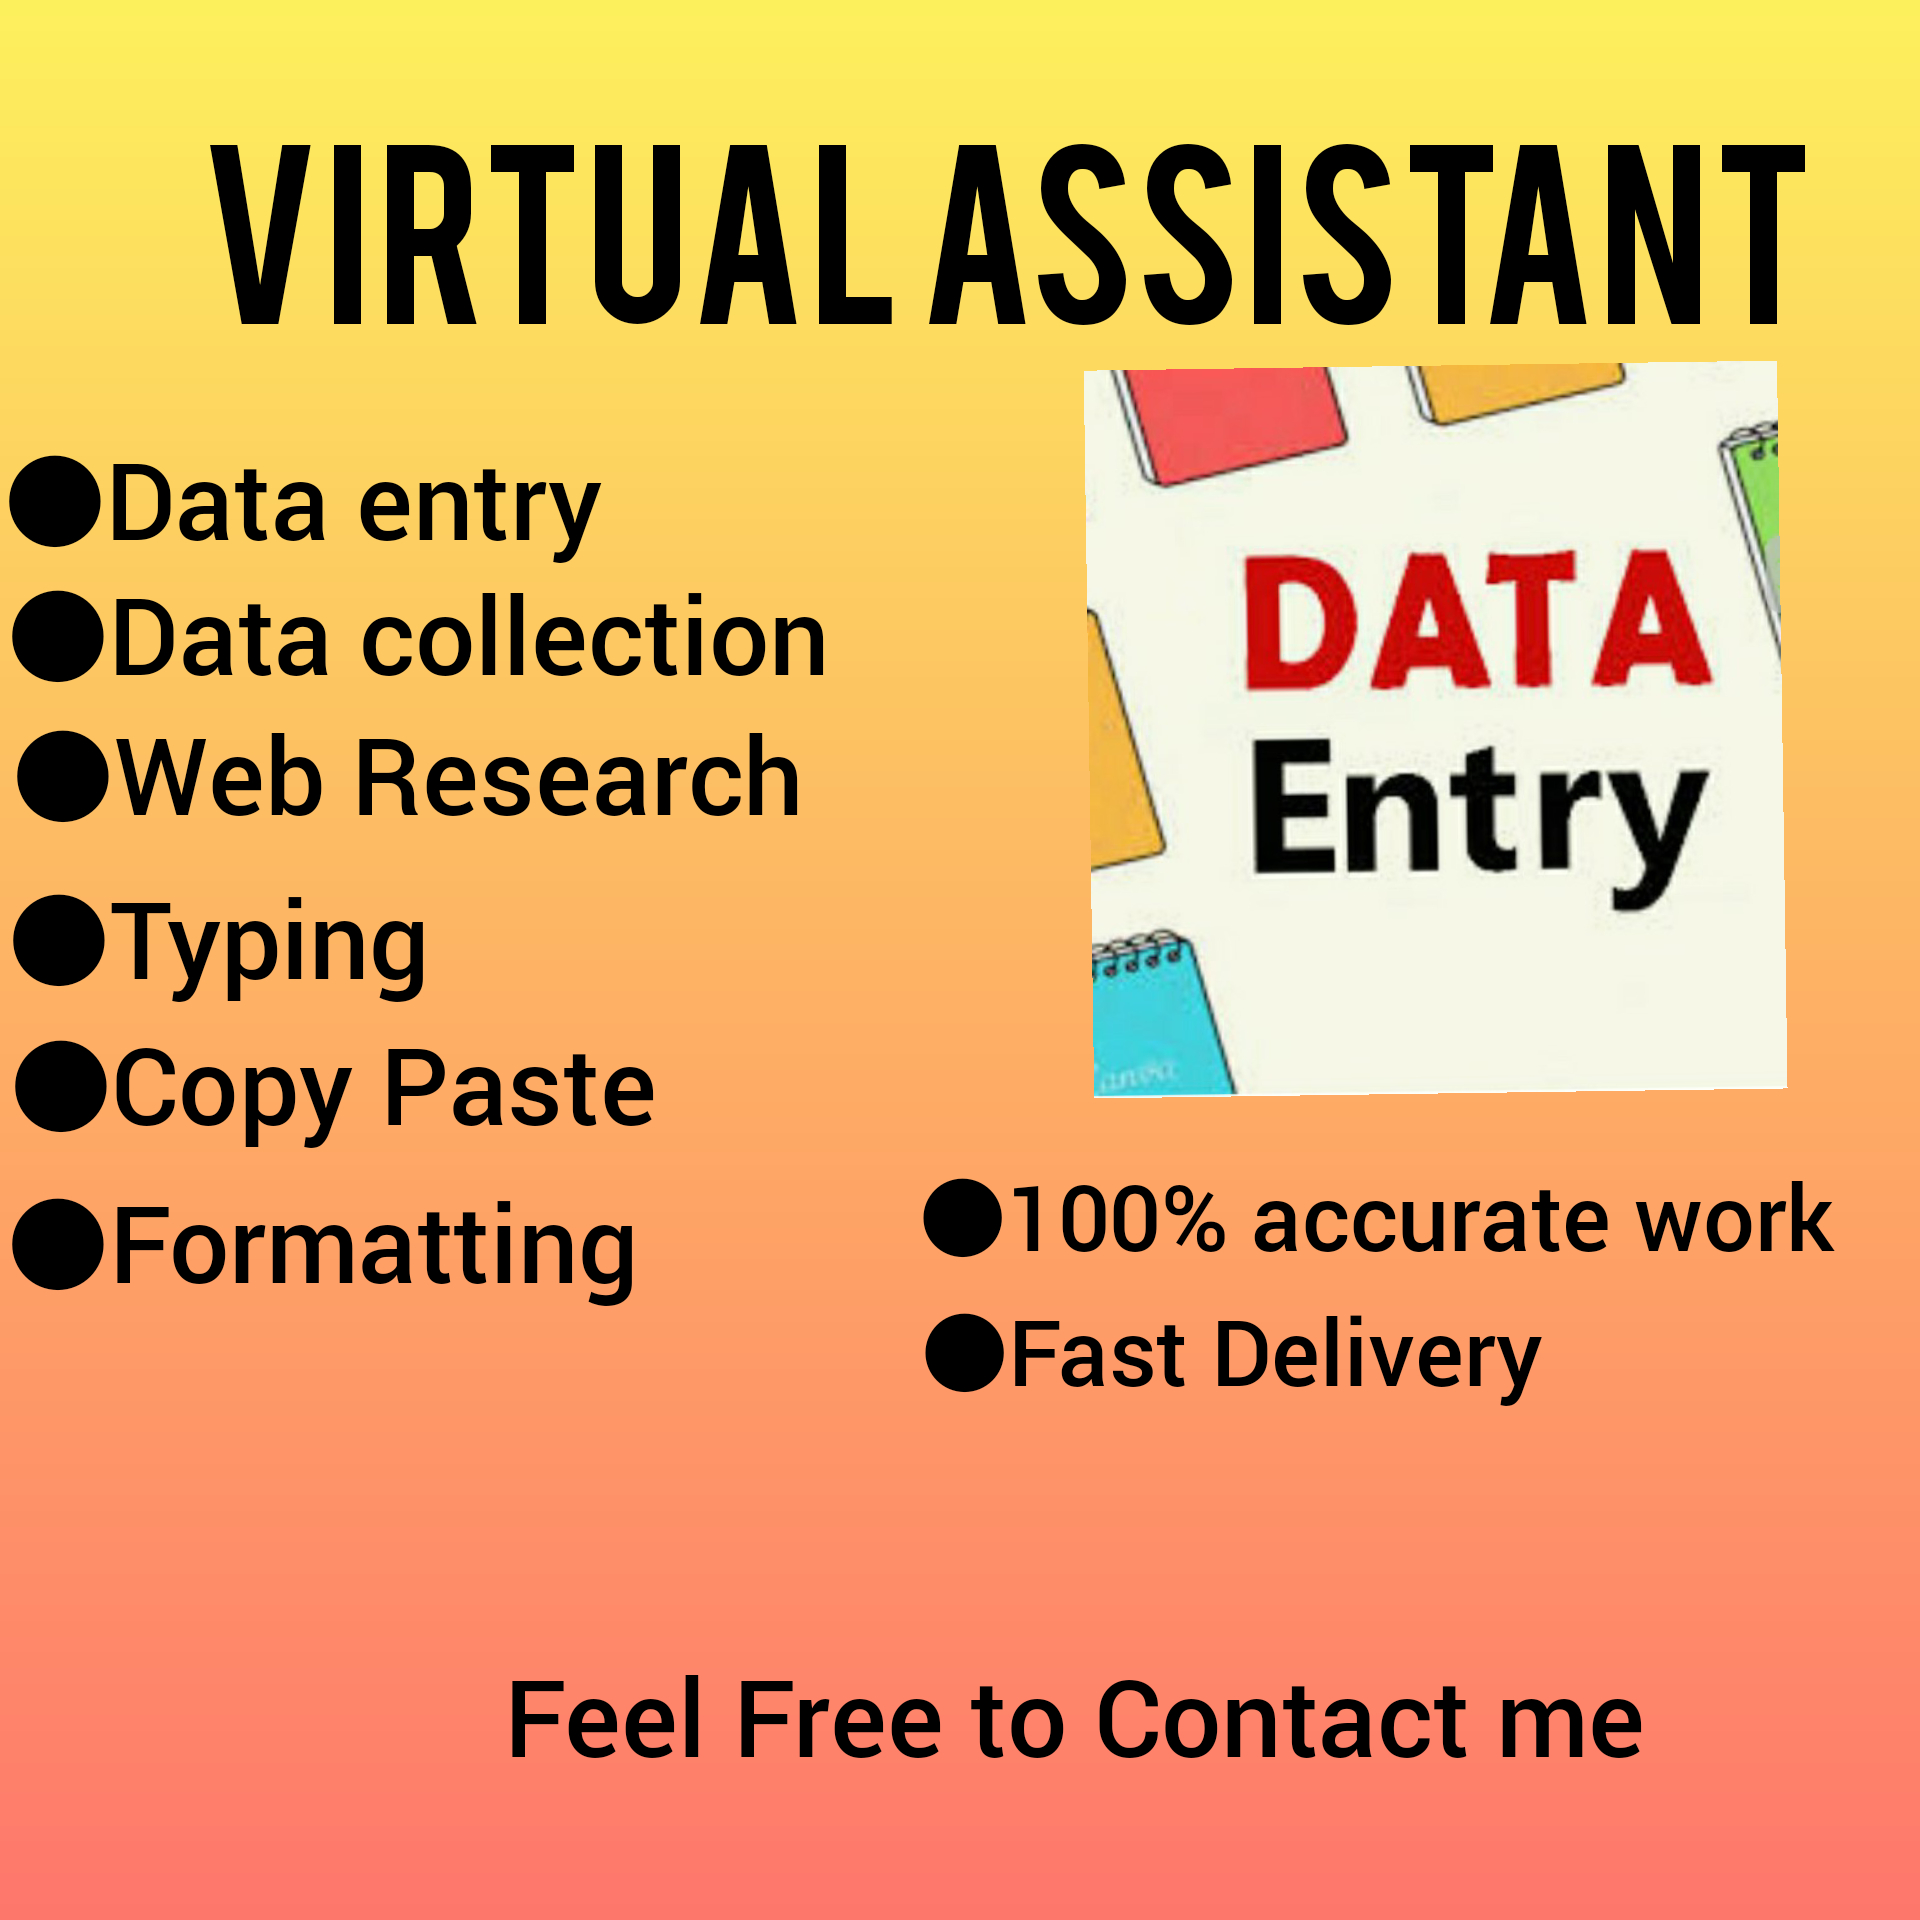 I will do data entry, typing, copy paste work